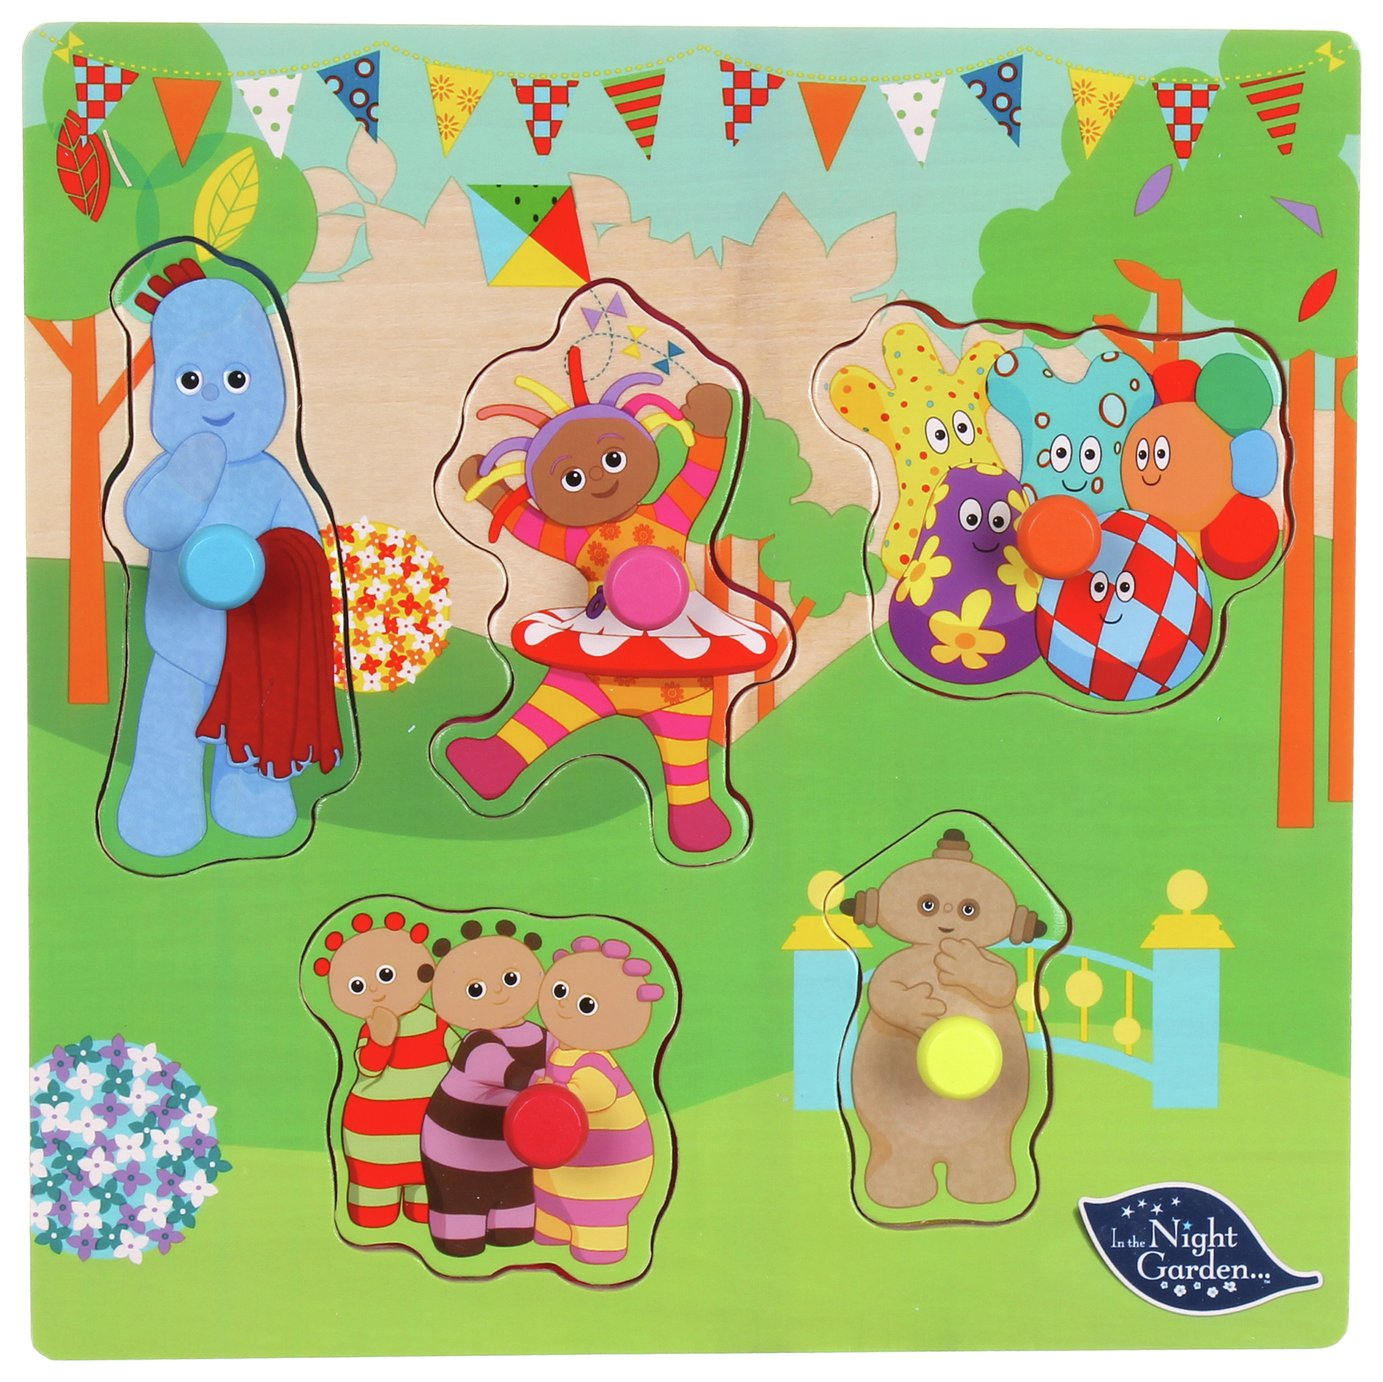 In The Night Garden - Pick and Place Wooden Puzzle.